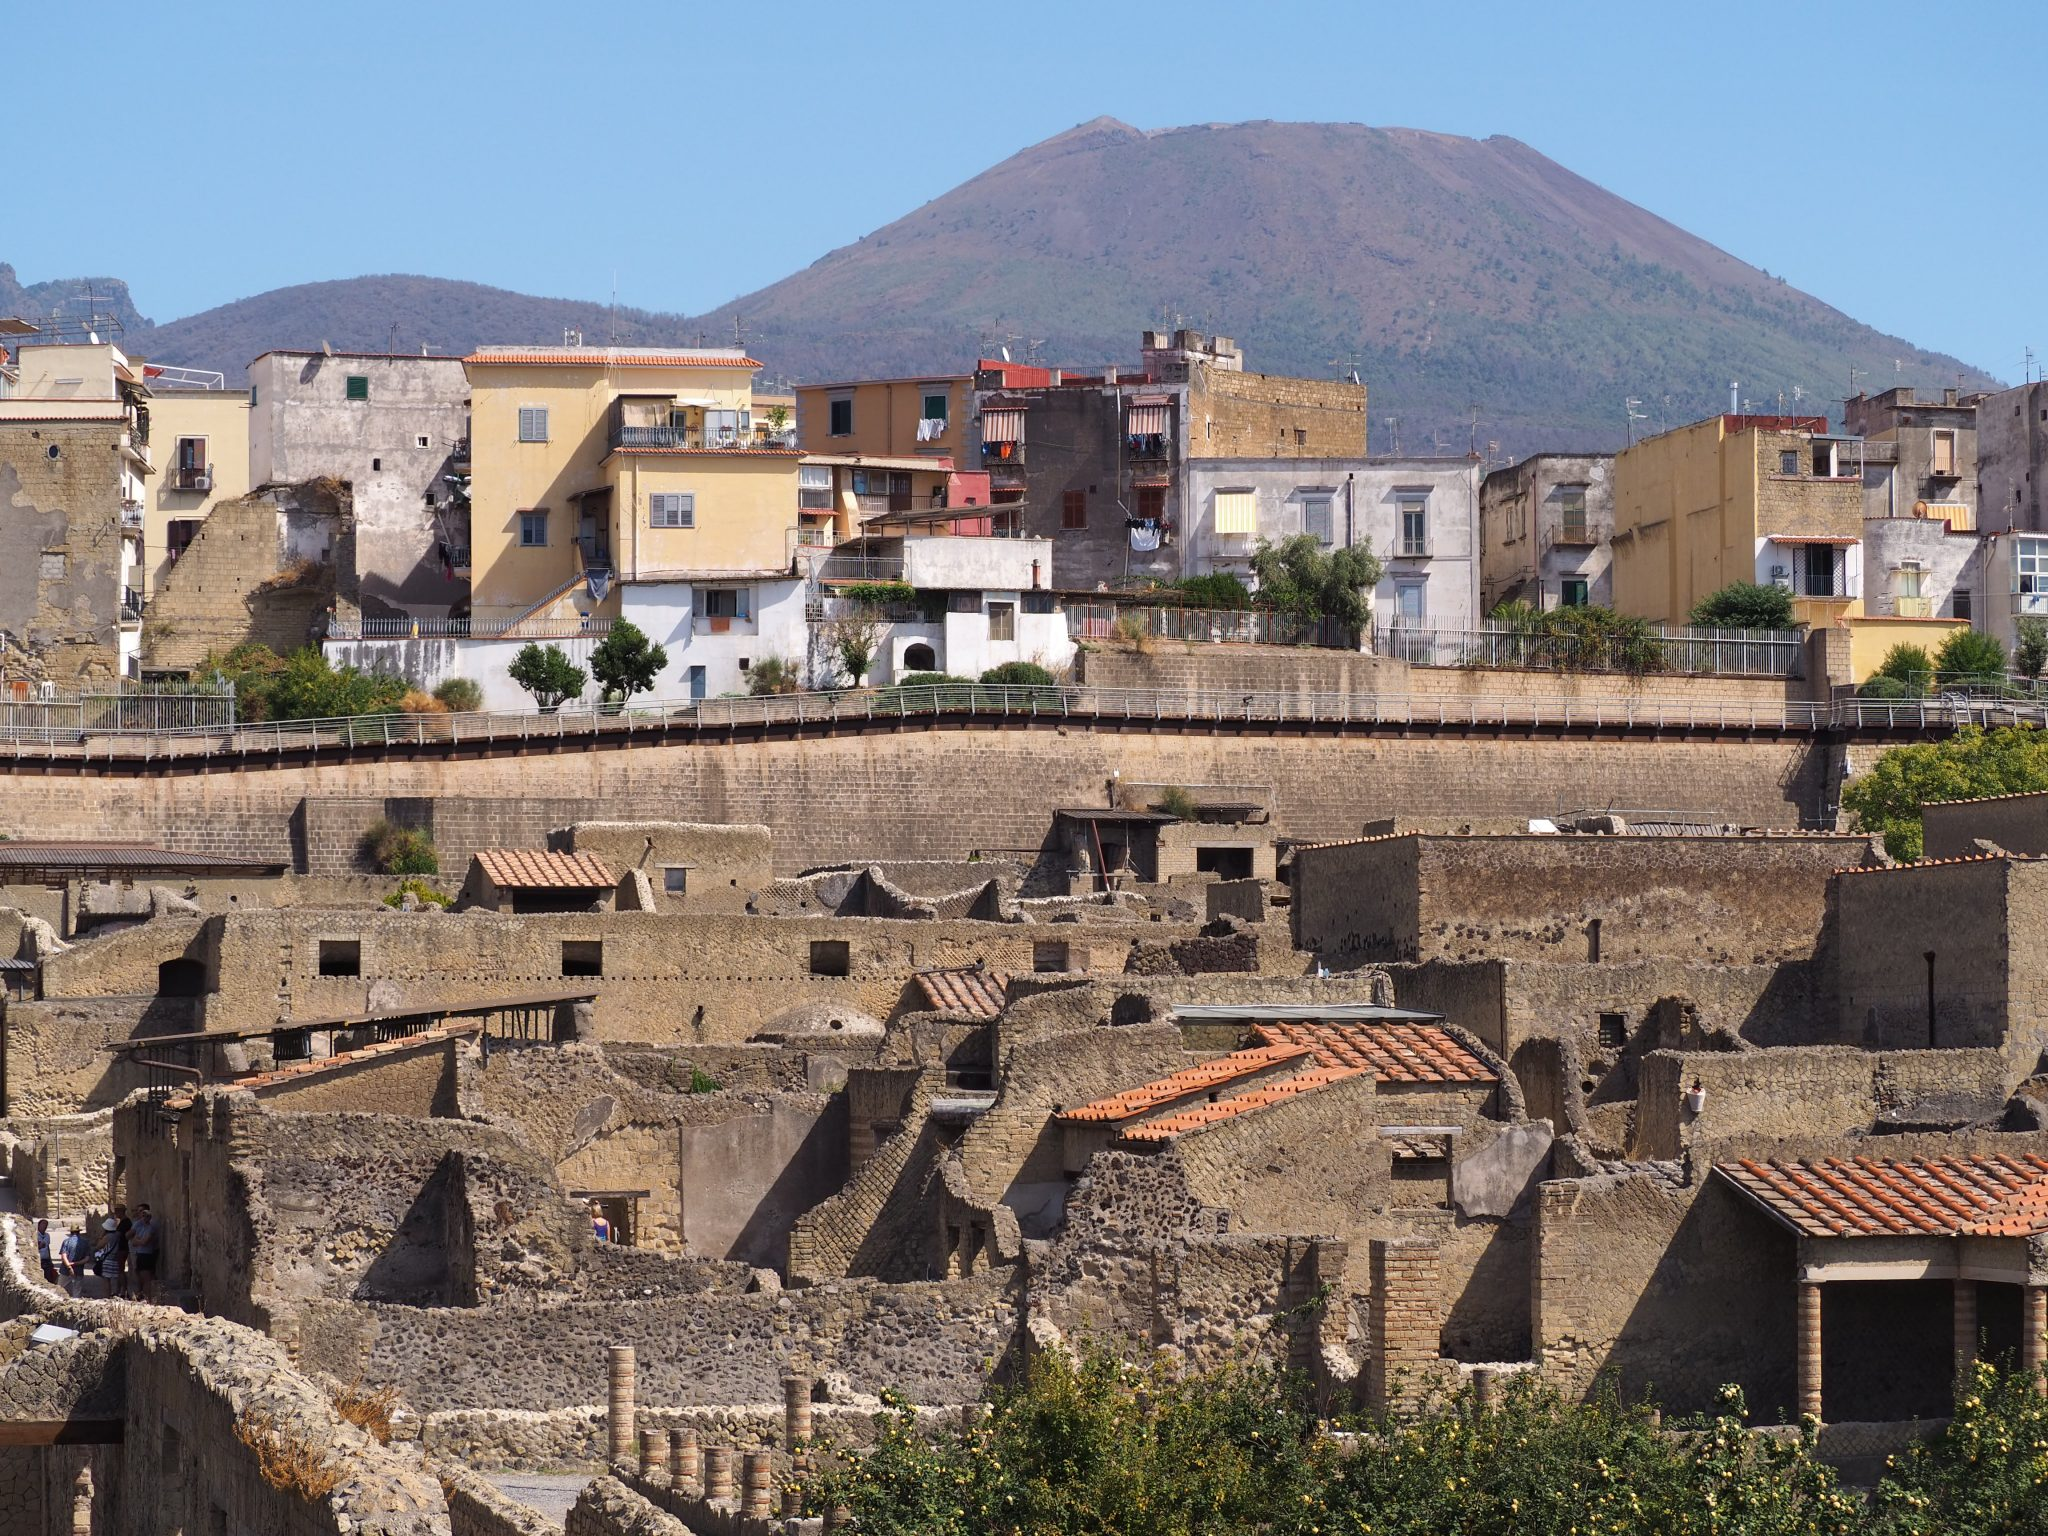 One Volcano, Two Towns, Old Meets New